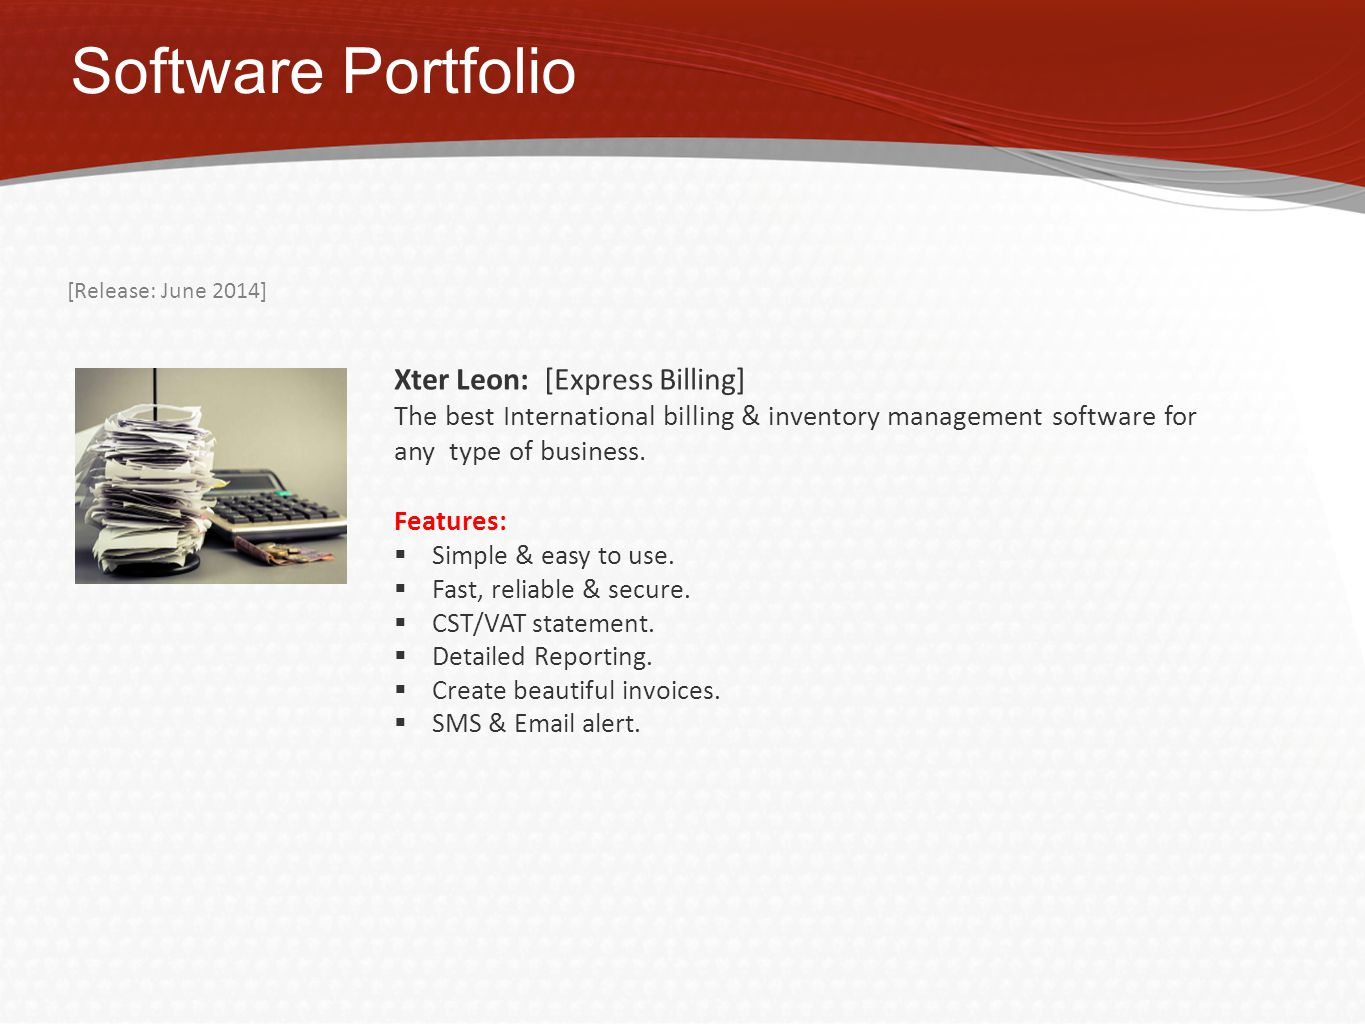 Software Portfolio Xter Leon: [Express Billing] The best International billing & inventory management software for any type of business.